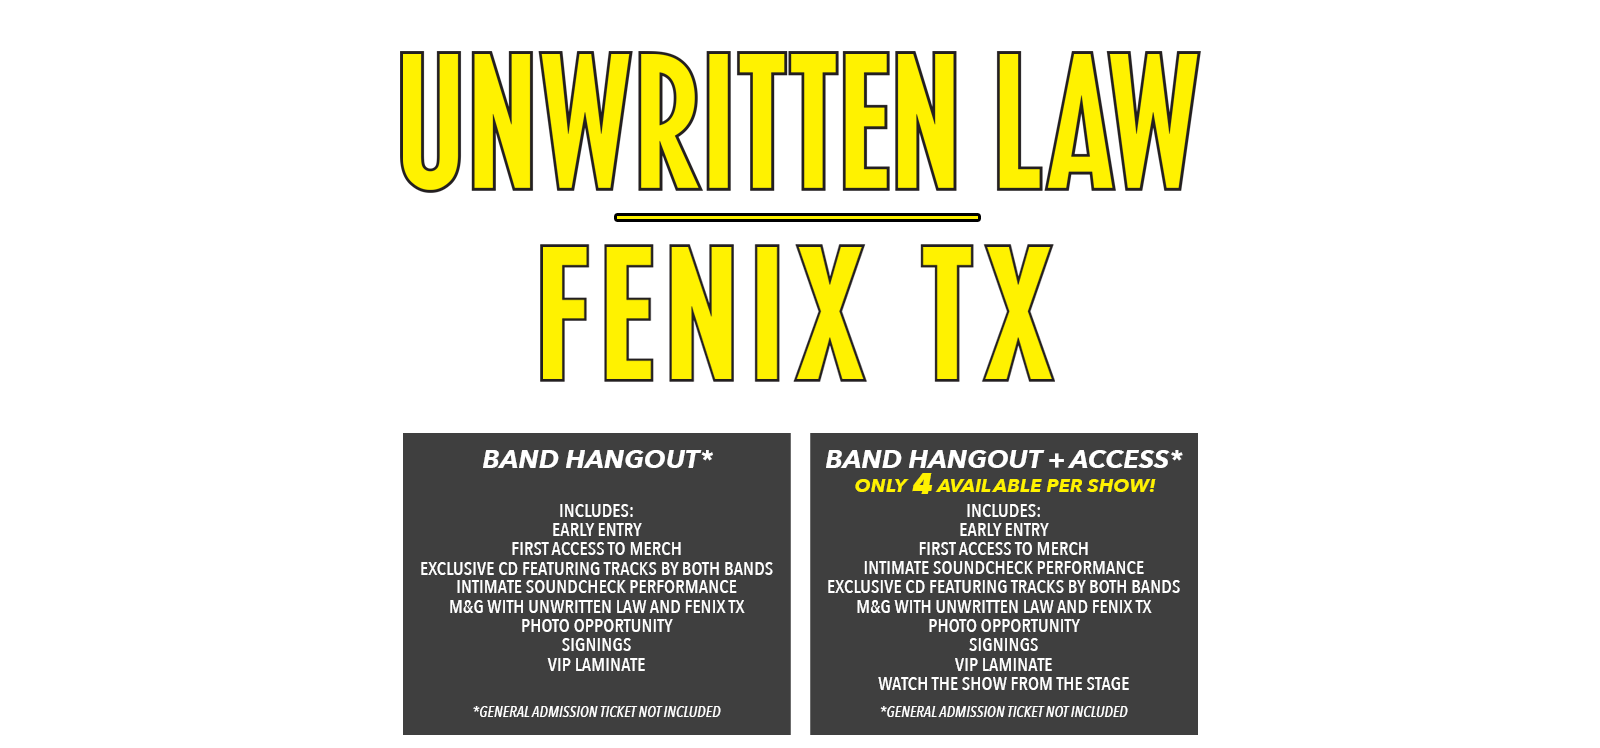 Unwritten Law Fenix TX Tickets